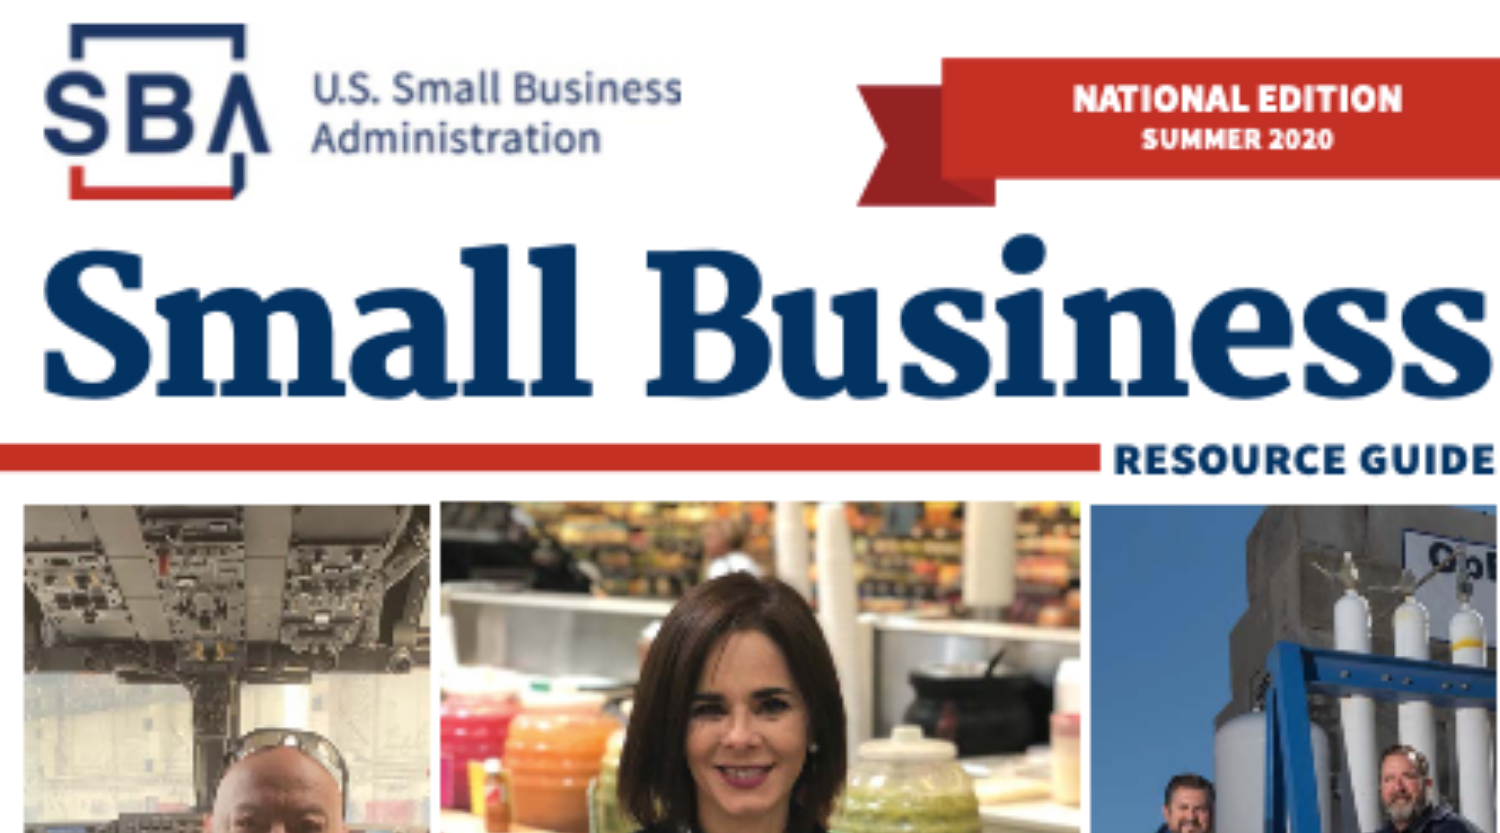 SBA Small Business Resource Guide